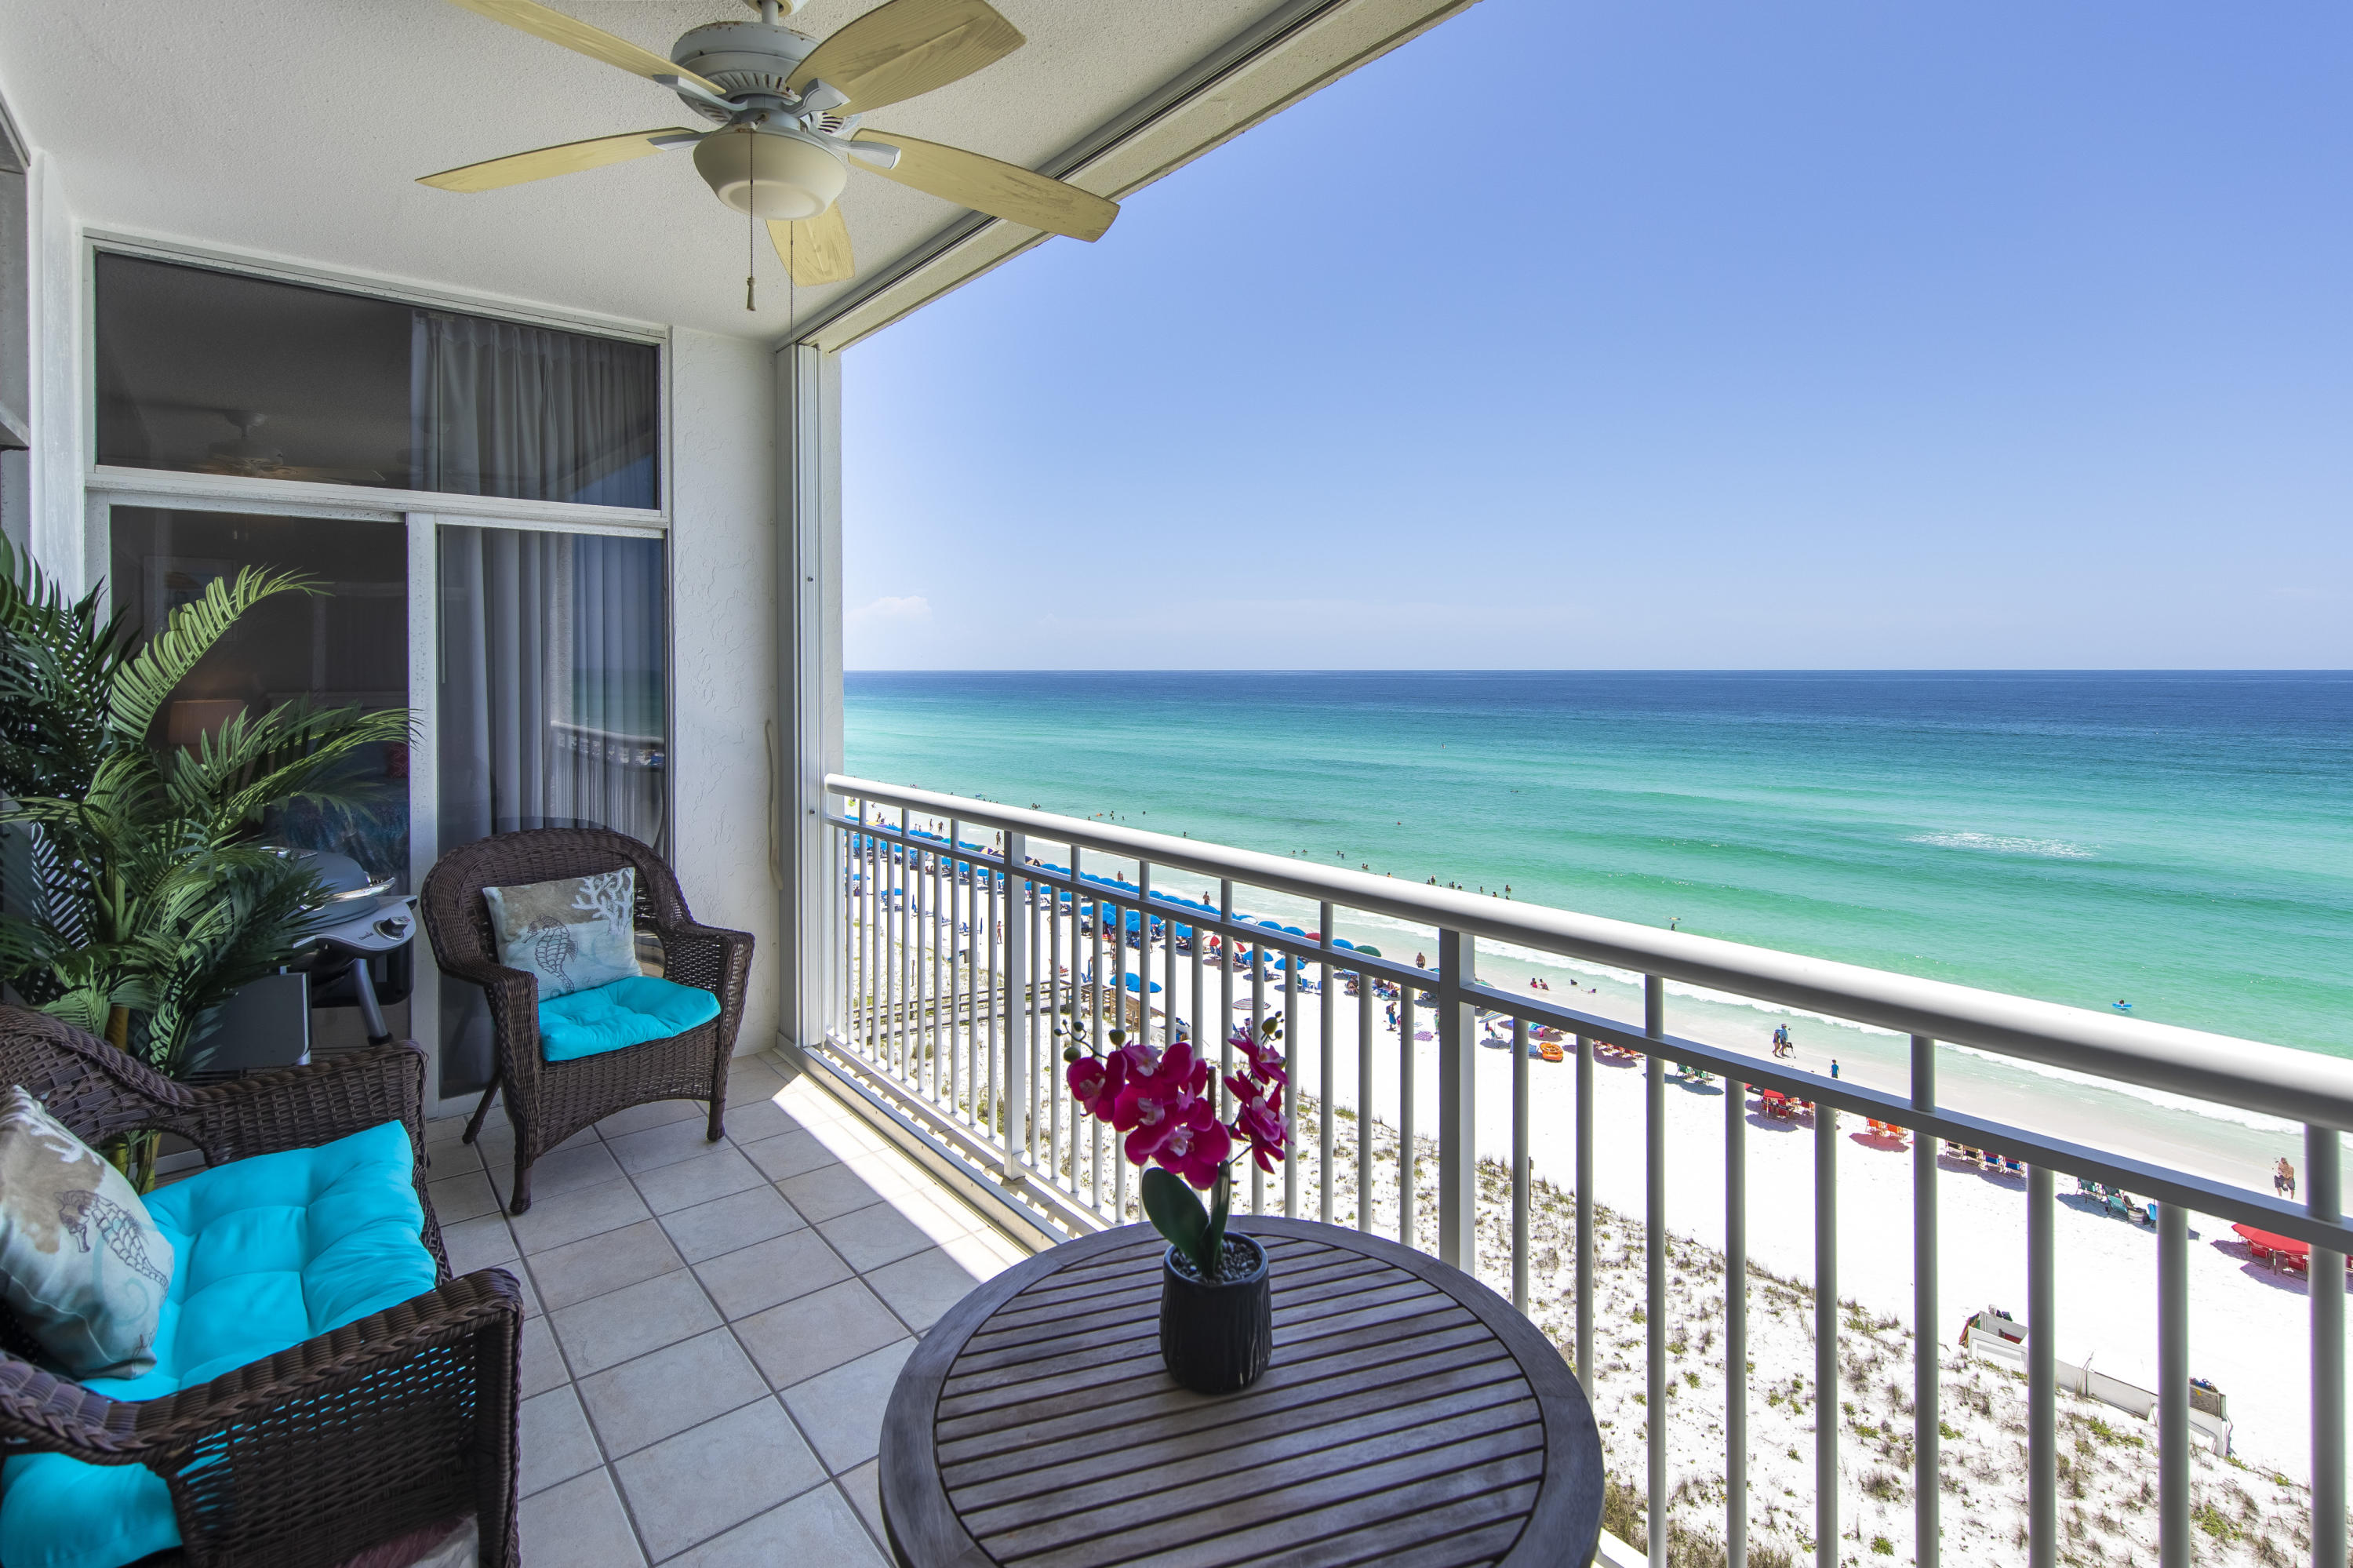 Spacious gulf front 3 bedroom 3 bath condo in the heart of Destin. This floor plan boasts a rare gulf front master bedroom and guest room,  both with balcony access. Floor to ceiling windows allow a full view of the beautiful emerald waters of the Gulf of Mexico while filling the space with natural light. This luxury beach abode offers a generous 2072 sq. ft. area complete with a great room for entertaining, large kitchen with granite, oversized bedrooms with spacious walk-in closets, separate storage area, and updated baths all in the coveted coastal design aesthetic.  Prime 7th floor location, in a hard to find non-rental condominium building. The Tides offers an incomparable beach experience with private beach access and attendant. Other amenities include, gated 24 hour security, pool, club house, tennis courts, basketball goals, ample guest parking, and covered assigned parking.